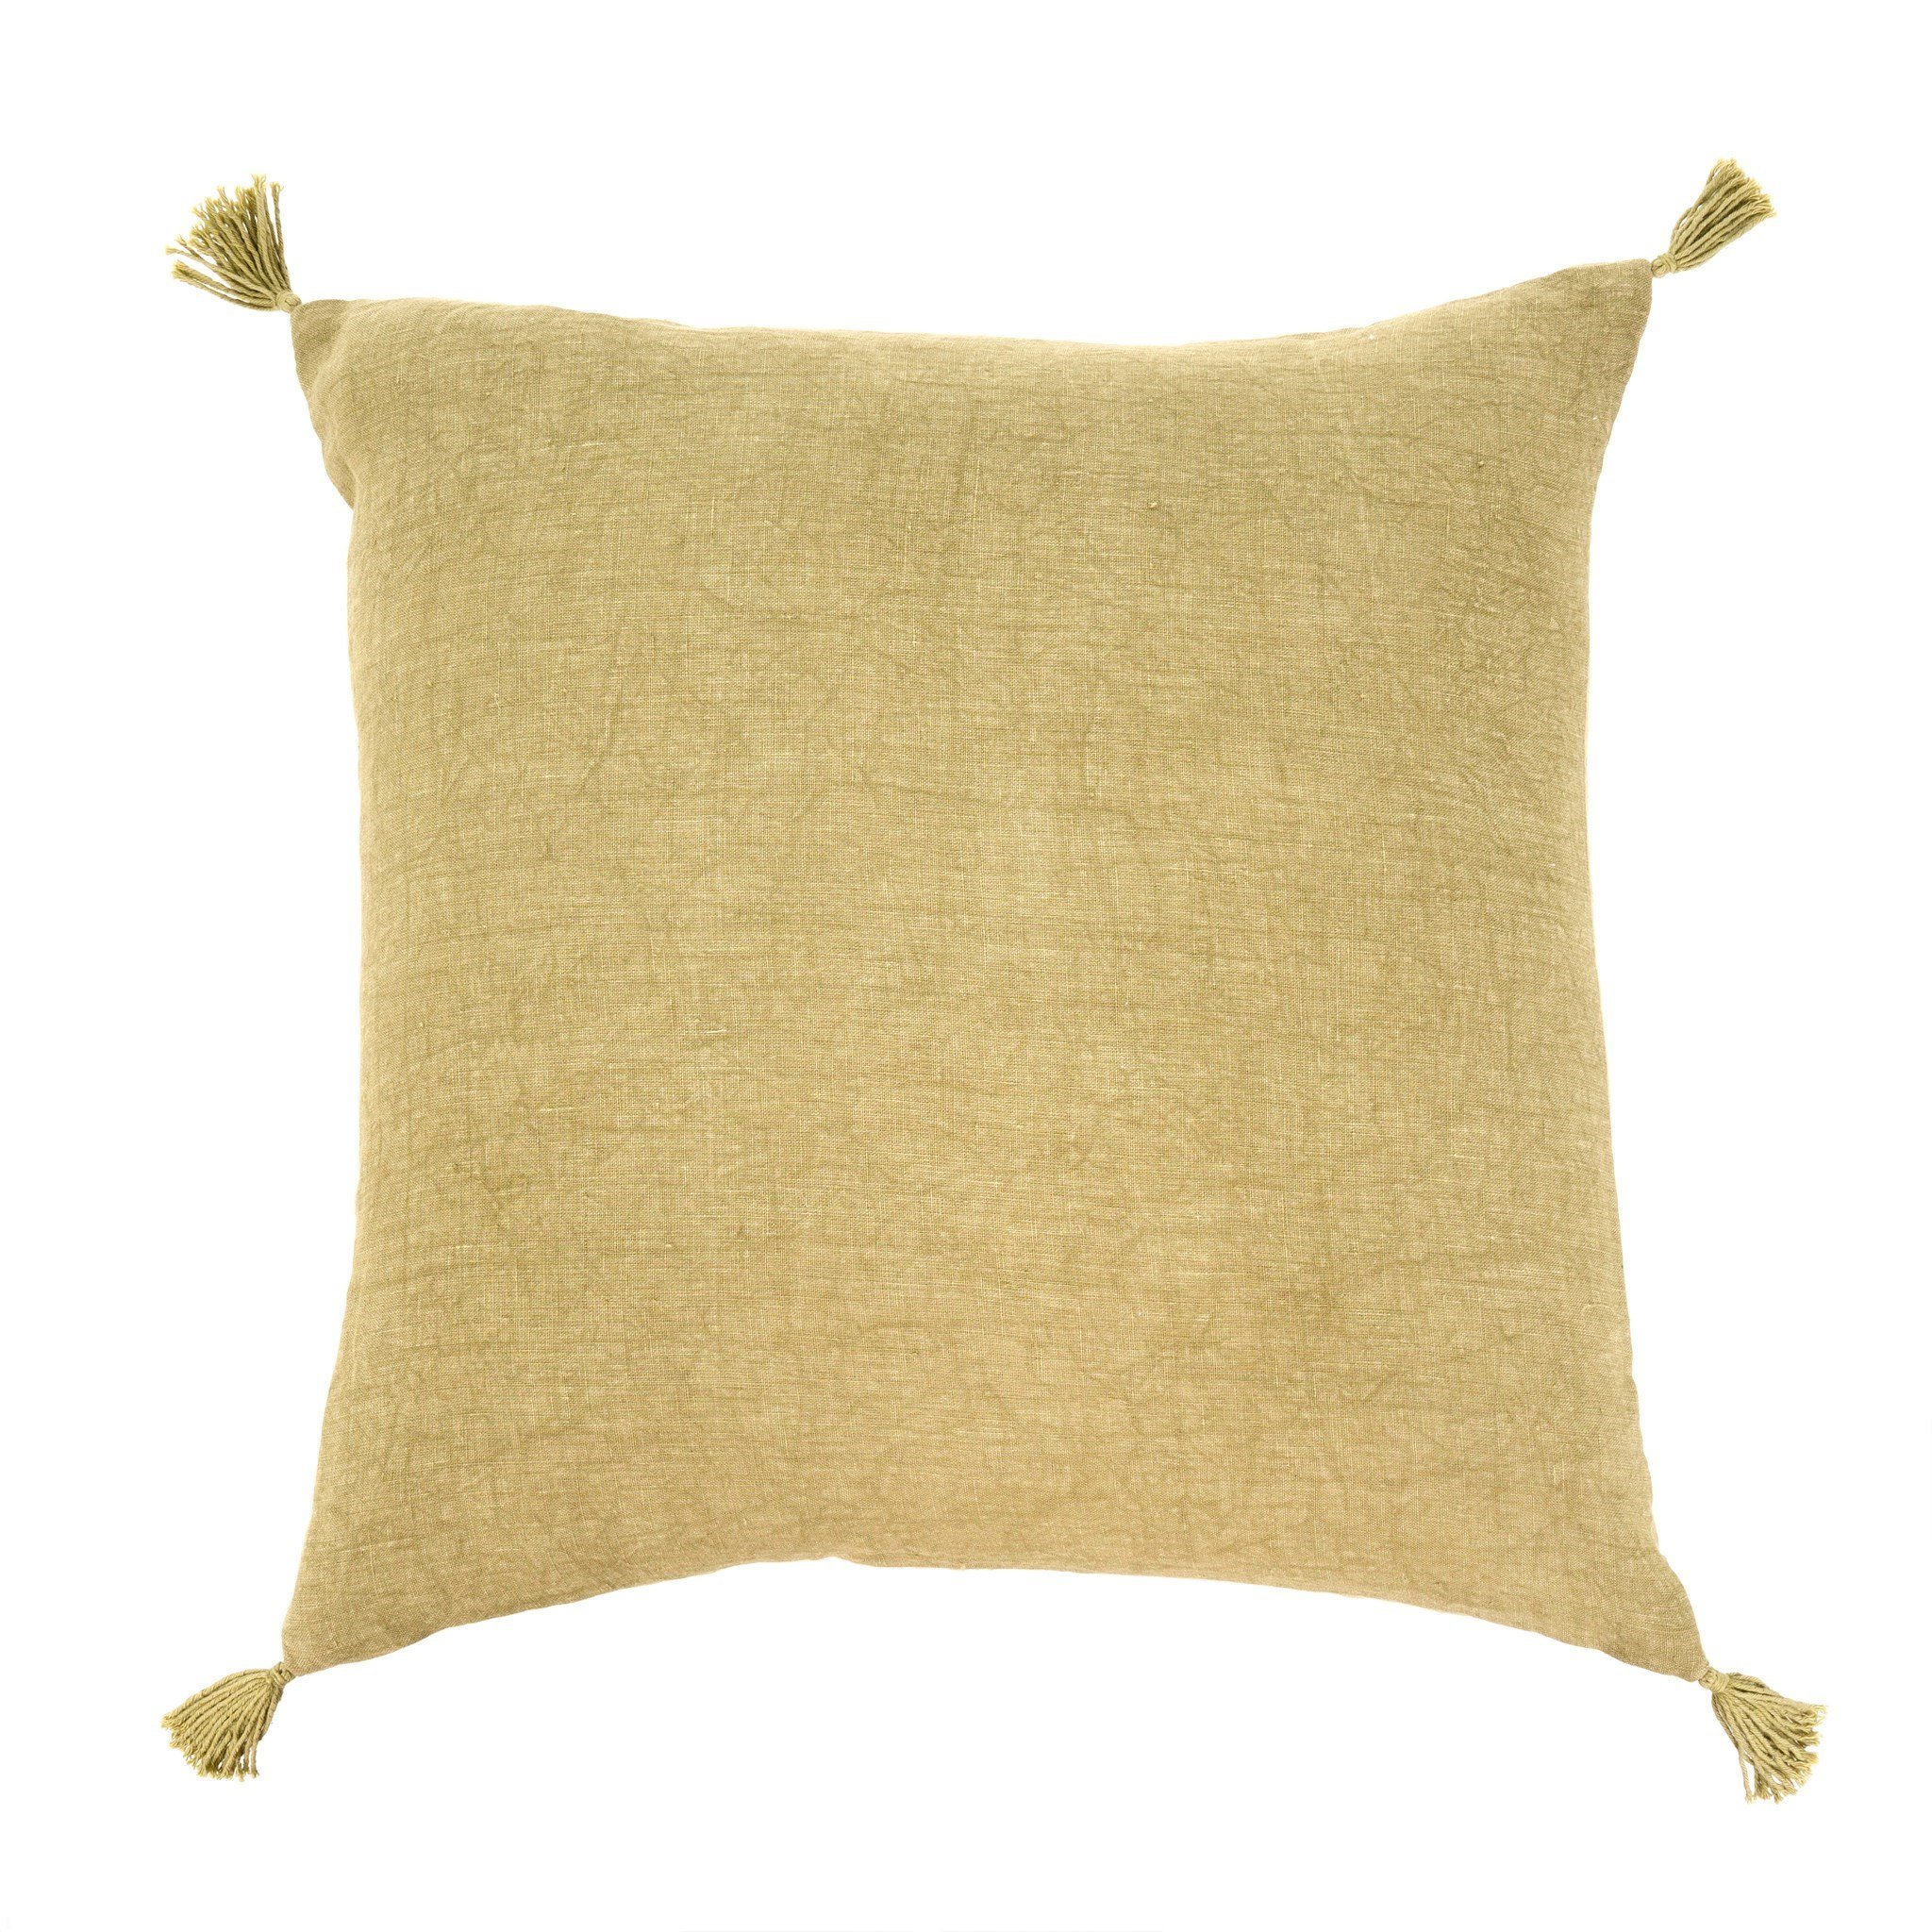 "20"" x 20"" Linen cover with corner tassels and removable feather insert.  Machine washable.  Made in India. $49.99"